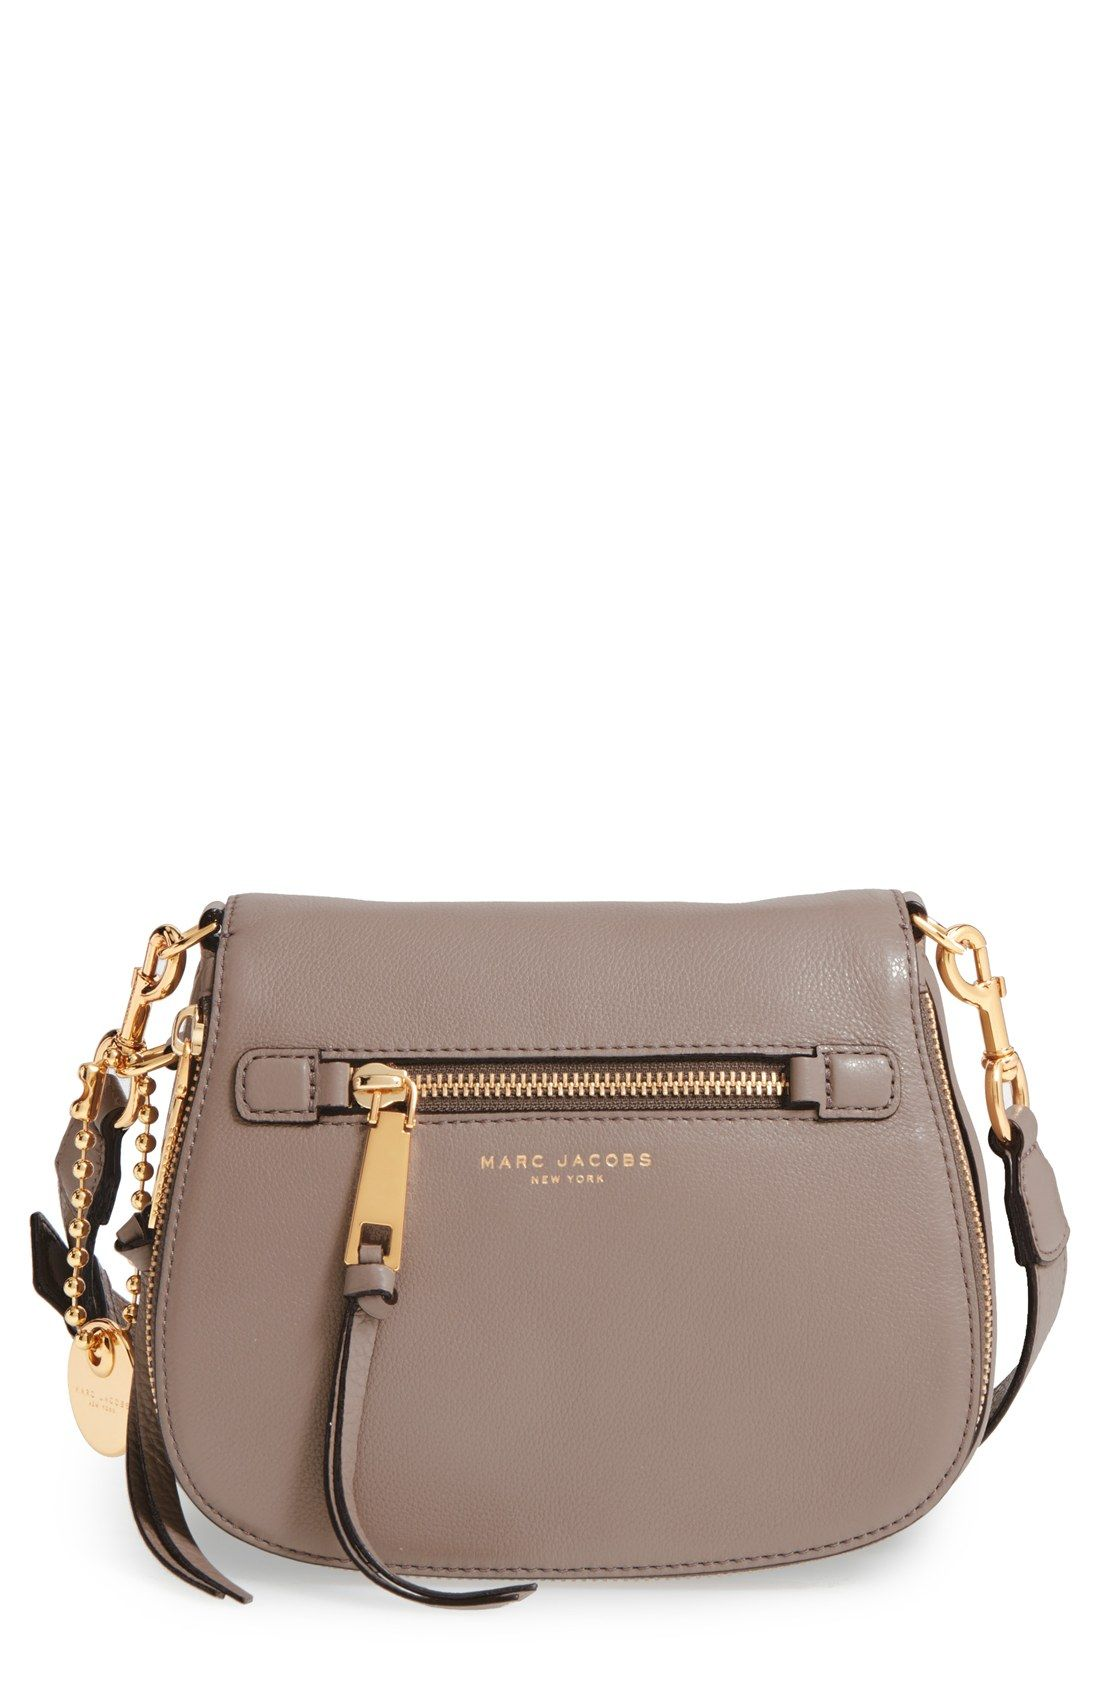 e0f8f05c1aa Marc Jacobs Pebbled Leather Crossbody Bag | Bags for days ...